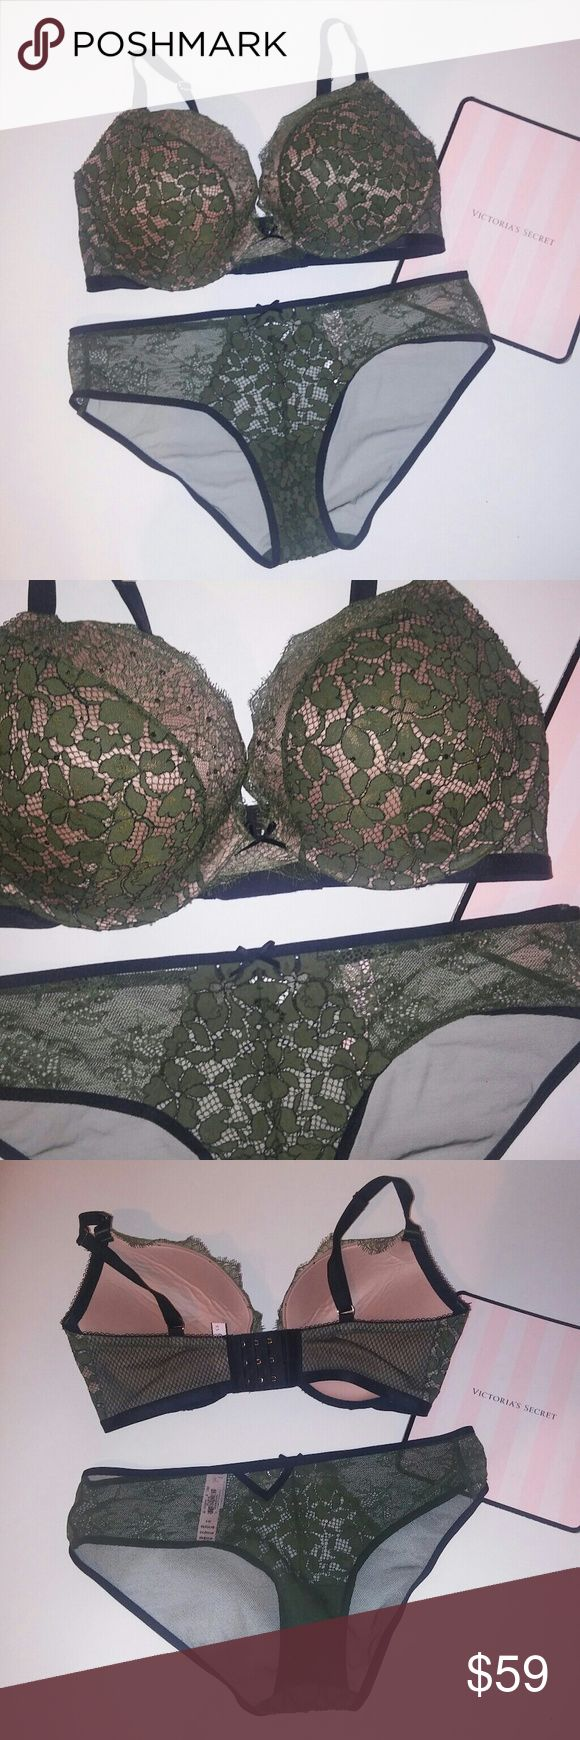 Victoria Secret Bra Set Victoria Secret Bra Set, New with Tags, chavonne11 36DD bra dream angels push up large hipkini panty green bling lace Victoria's Secret Intimates & Sleepwear Bras